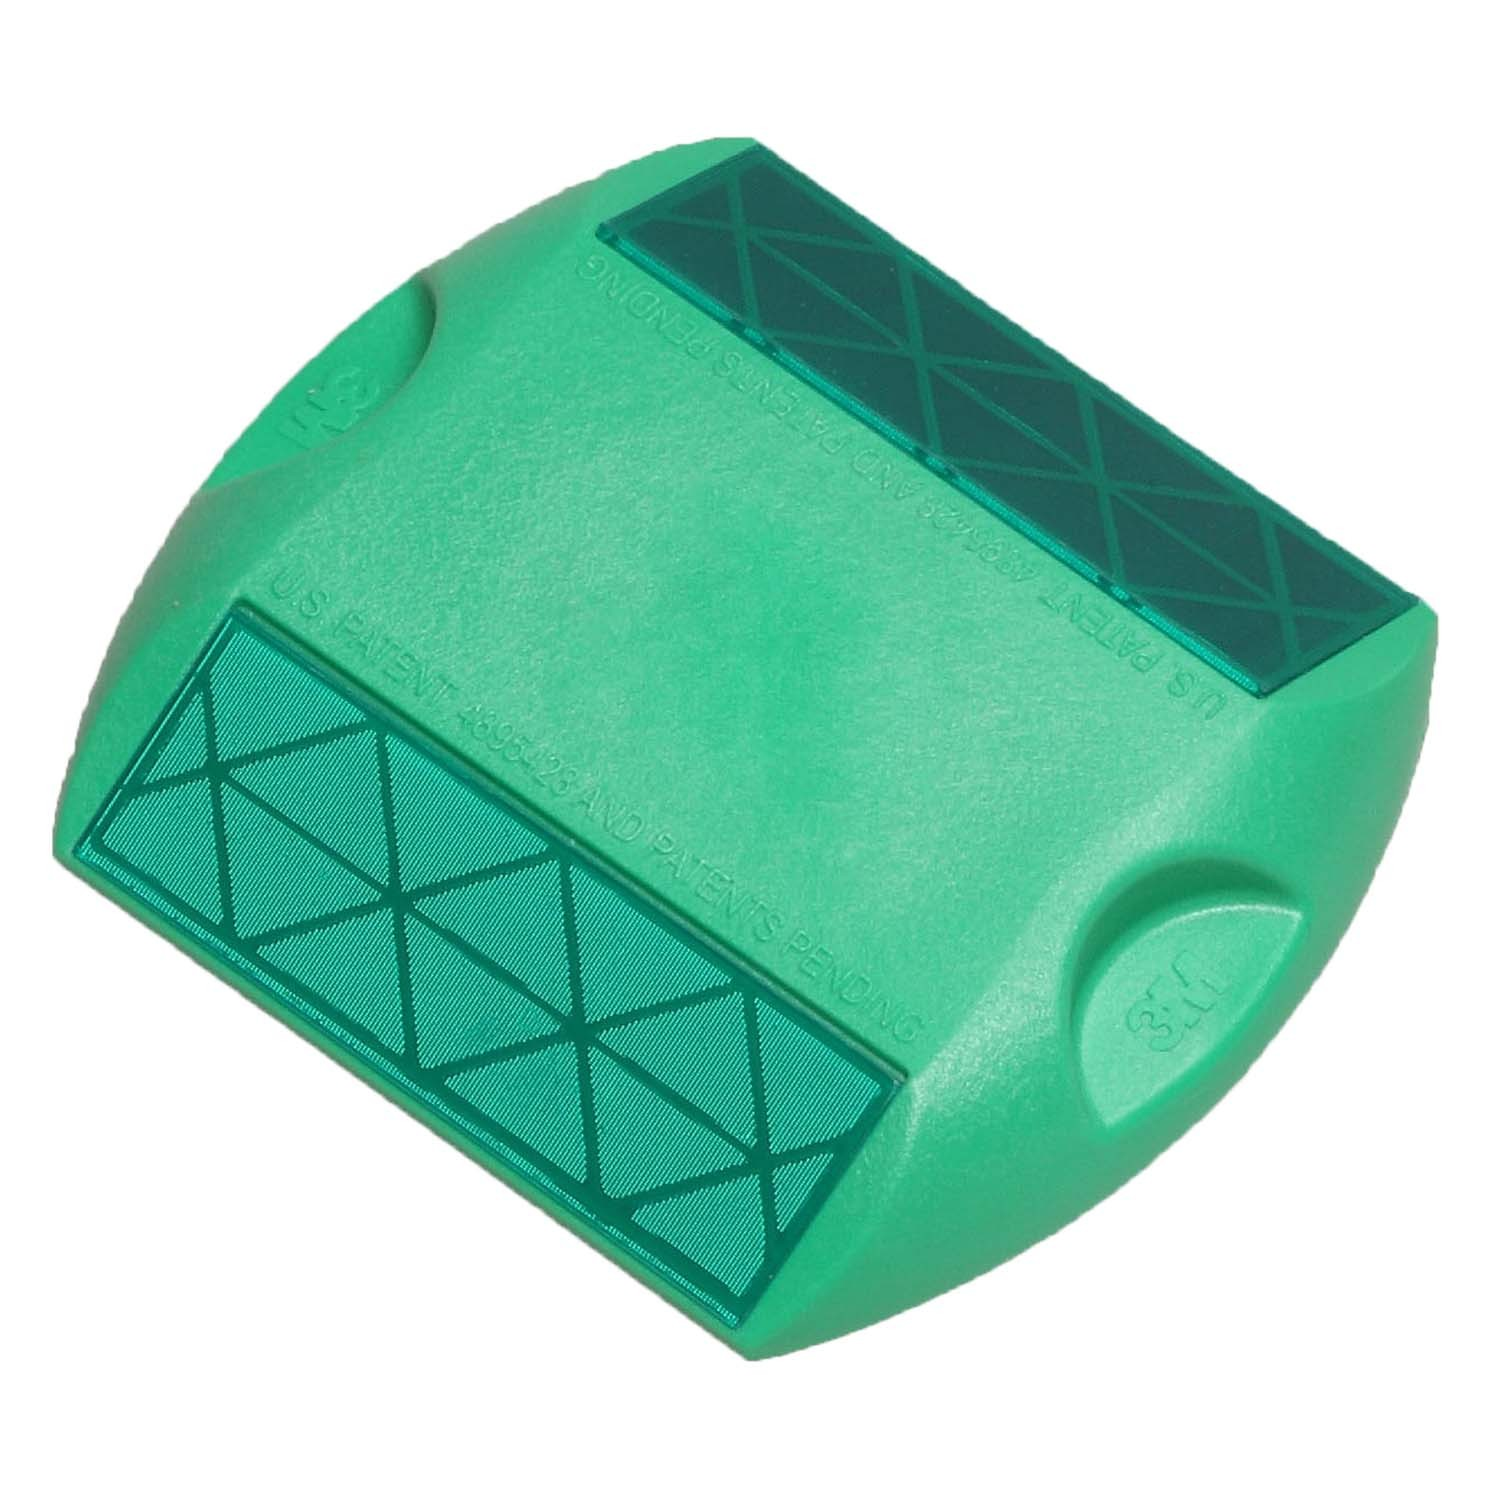 Two-Way Green 3M Raised Pavement Marker Series 290 RPM-290-2G